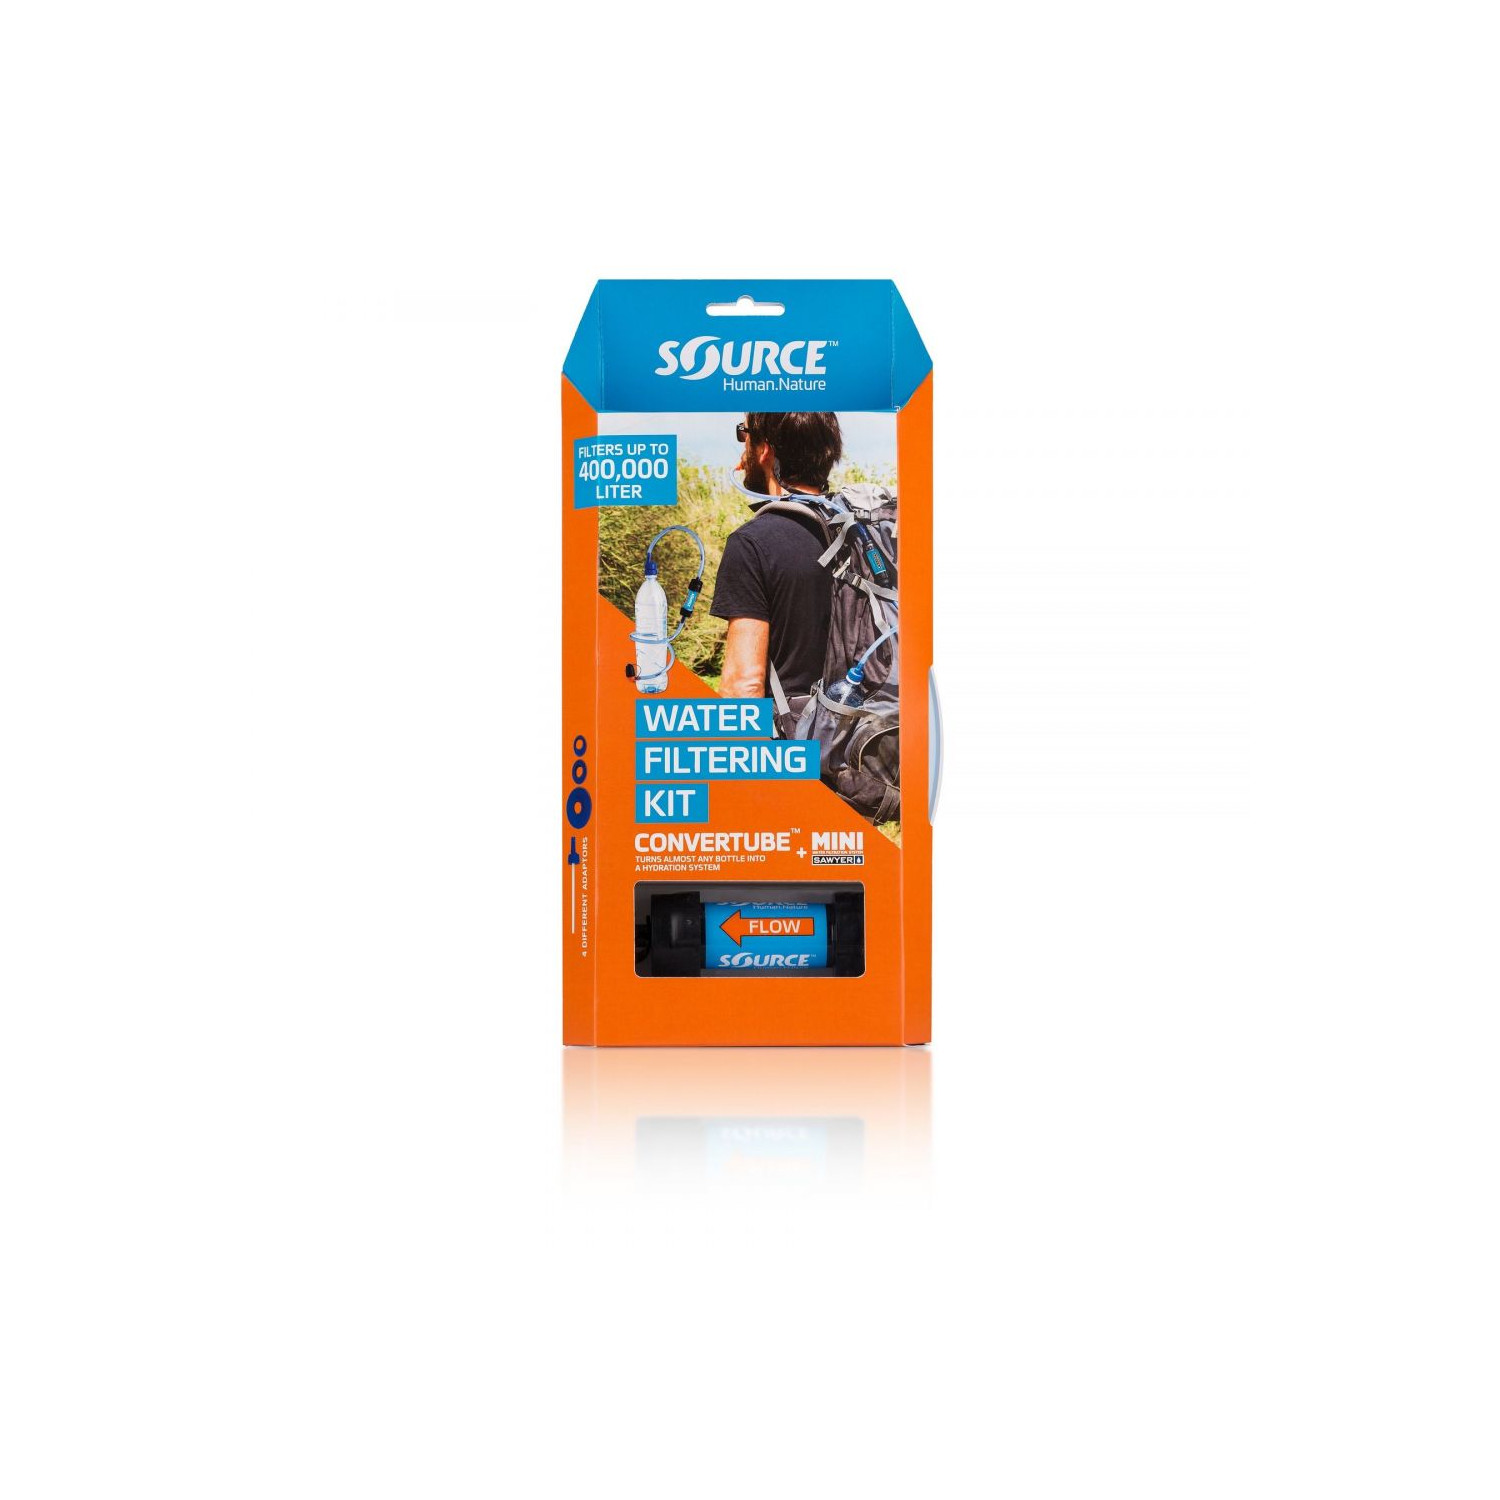 Source Convertube + Sawyer Filter Kit